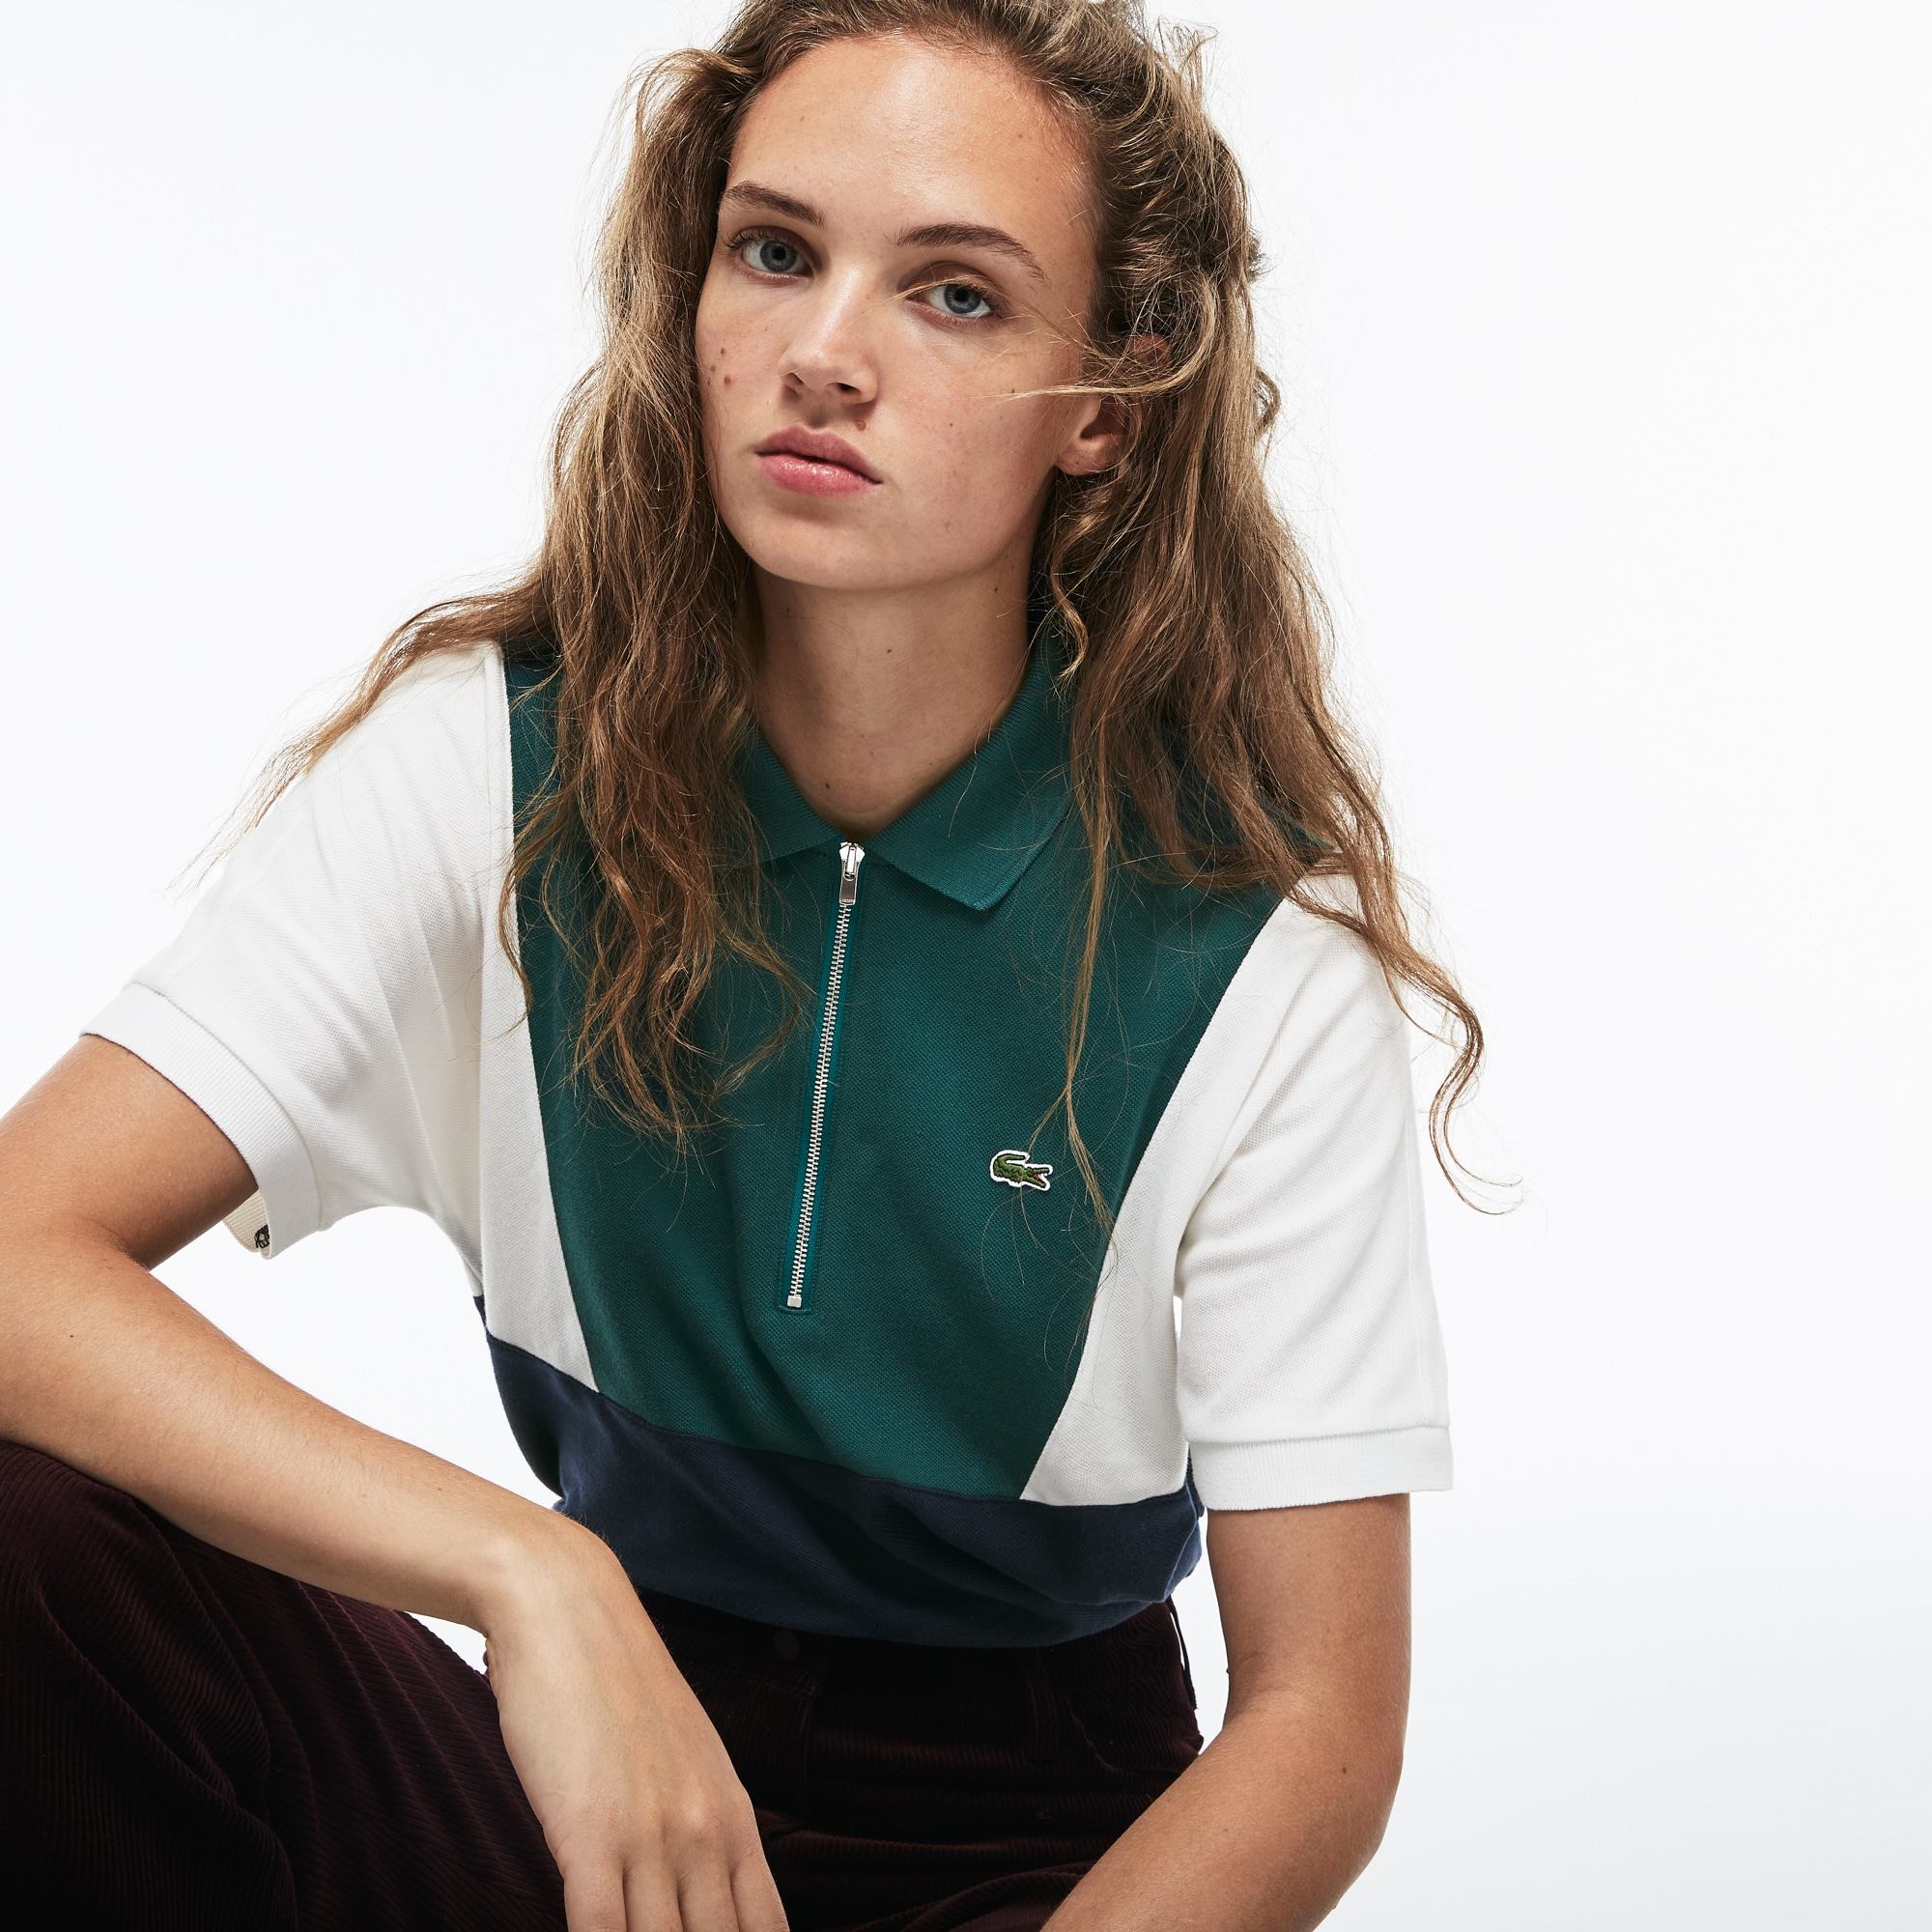 Women's Lacoste Zip Neck Colorblock Terrycloth Piqué Polo Shirt